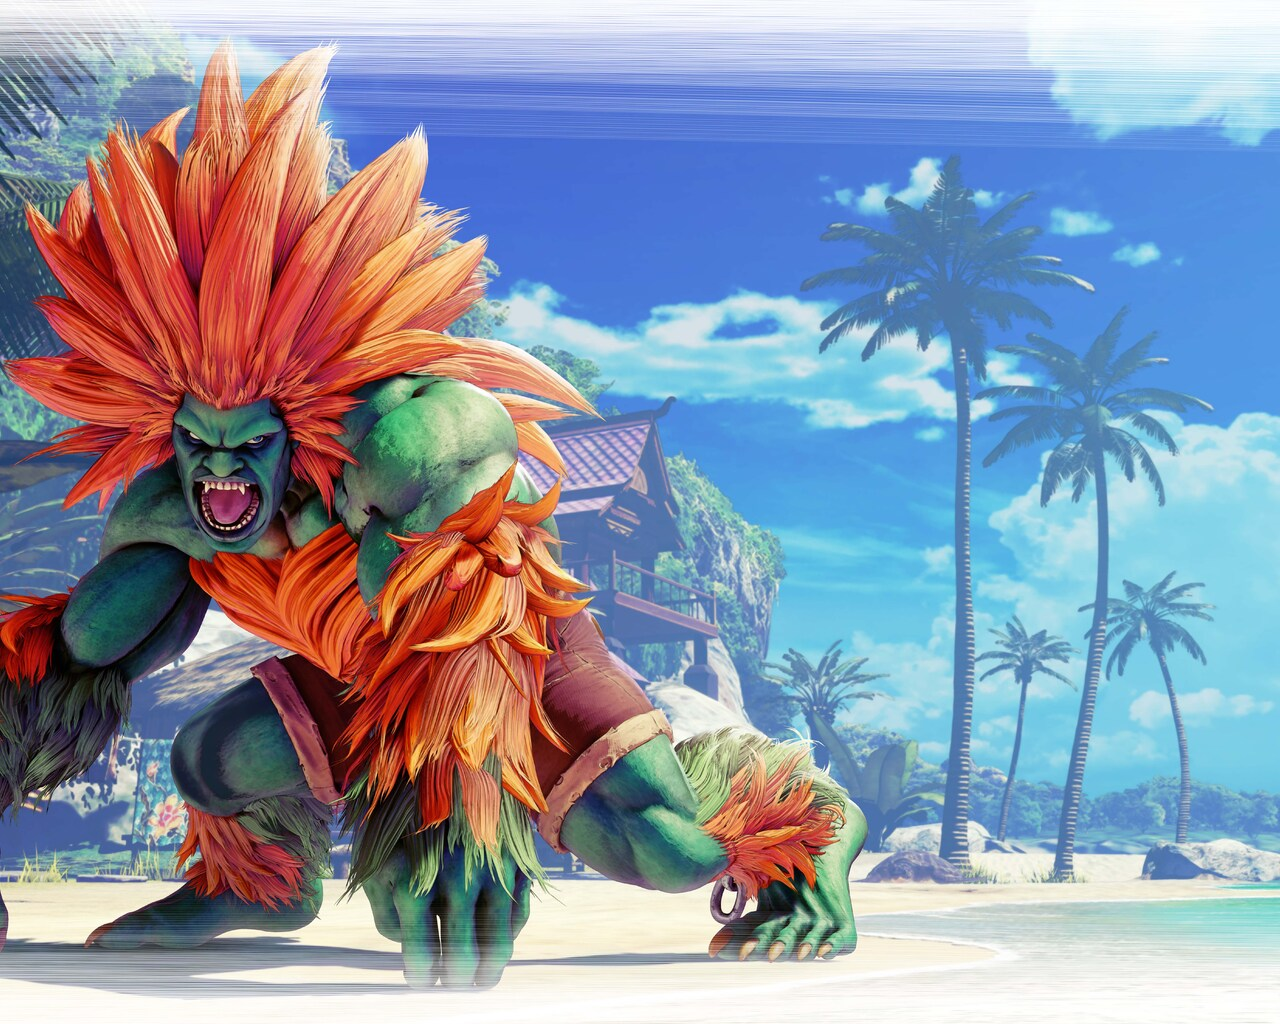 blanka-street-fighter-v-8k-w1.jpg